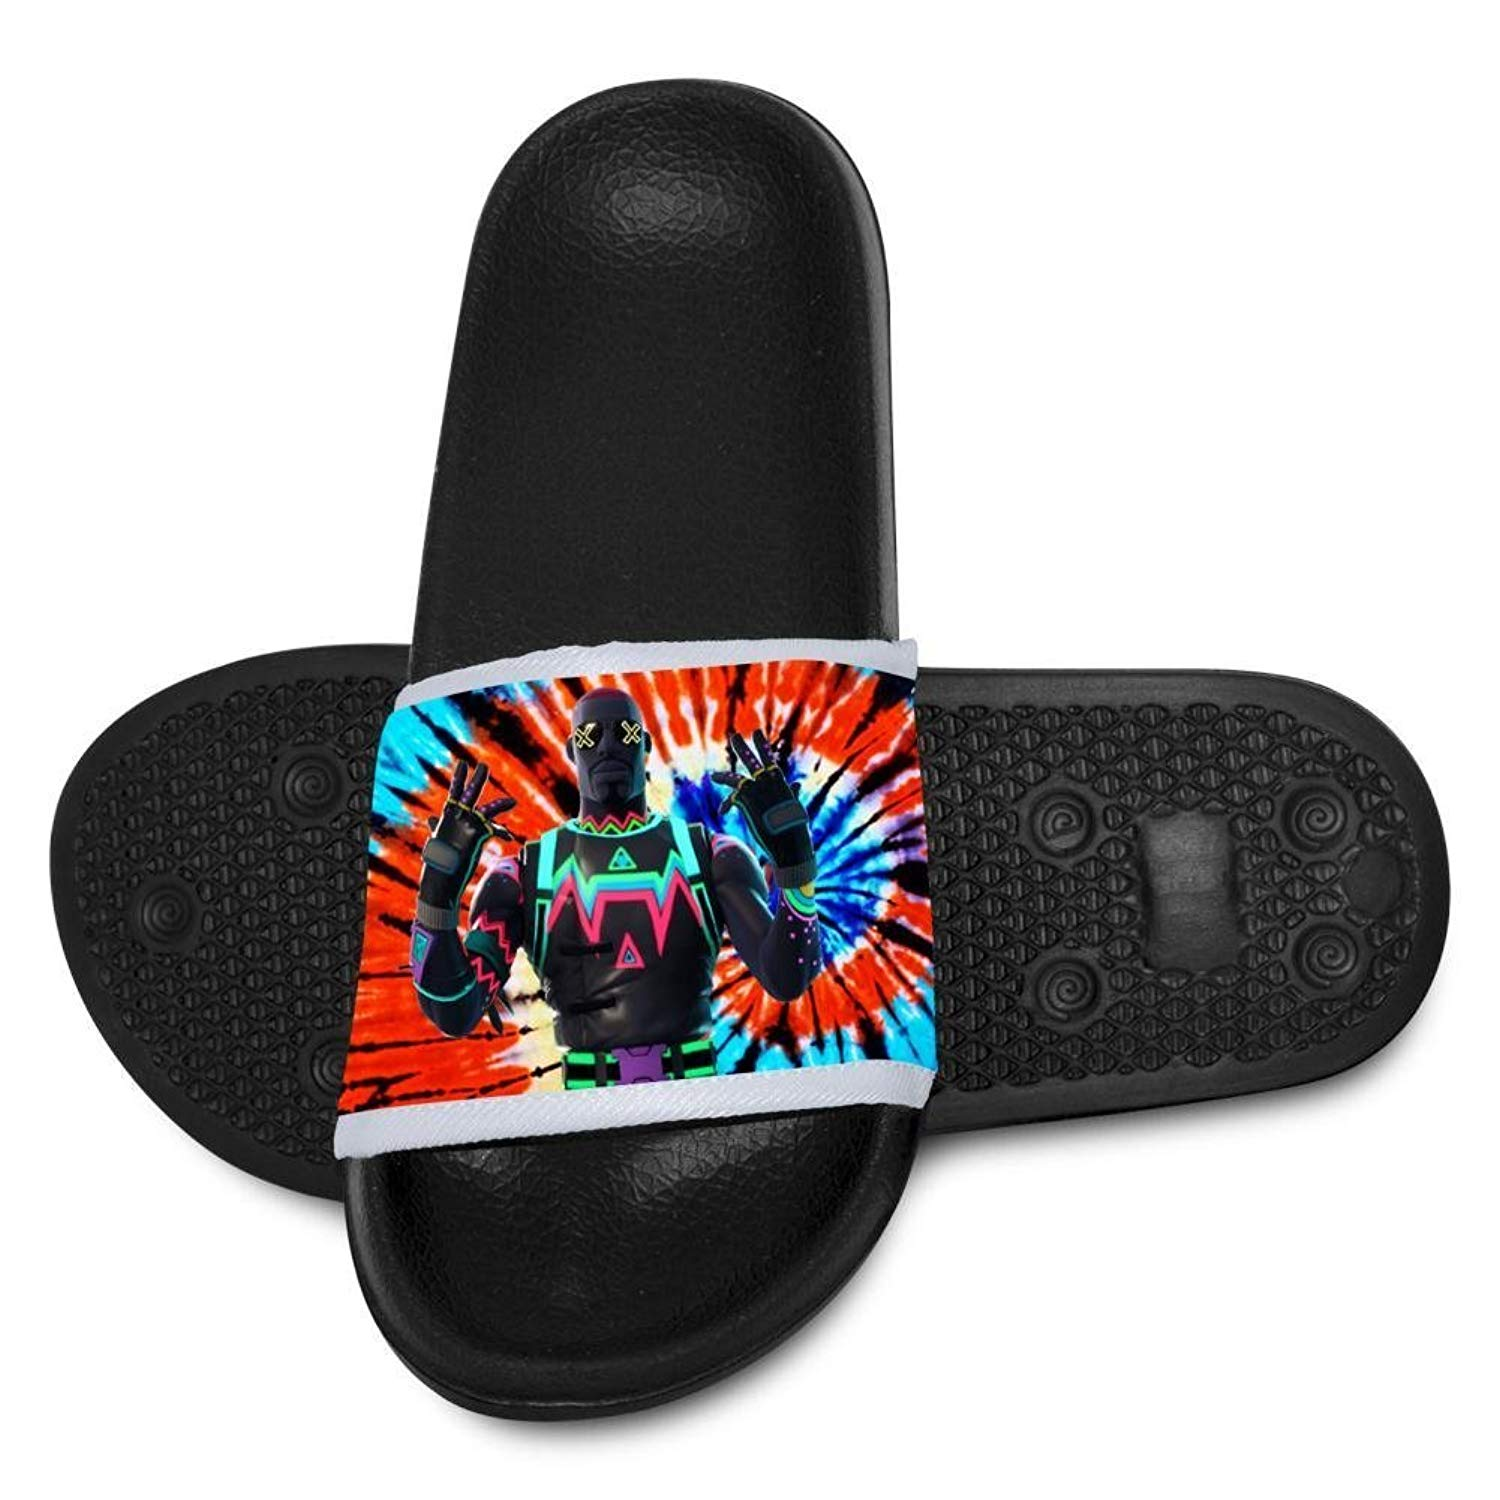 Hip Hop Panda Fireghter Slippers for Boy Girl Casual Sandals Shoes Creative 3D Printed Graphic Hipster Design